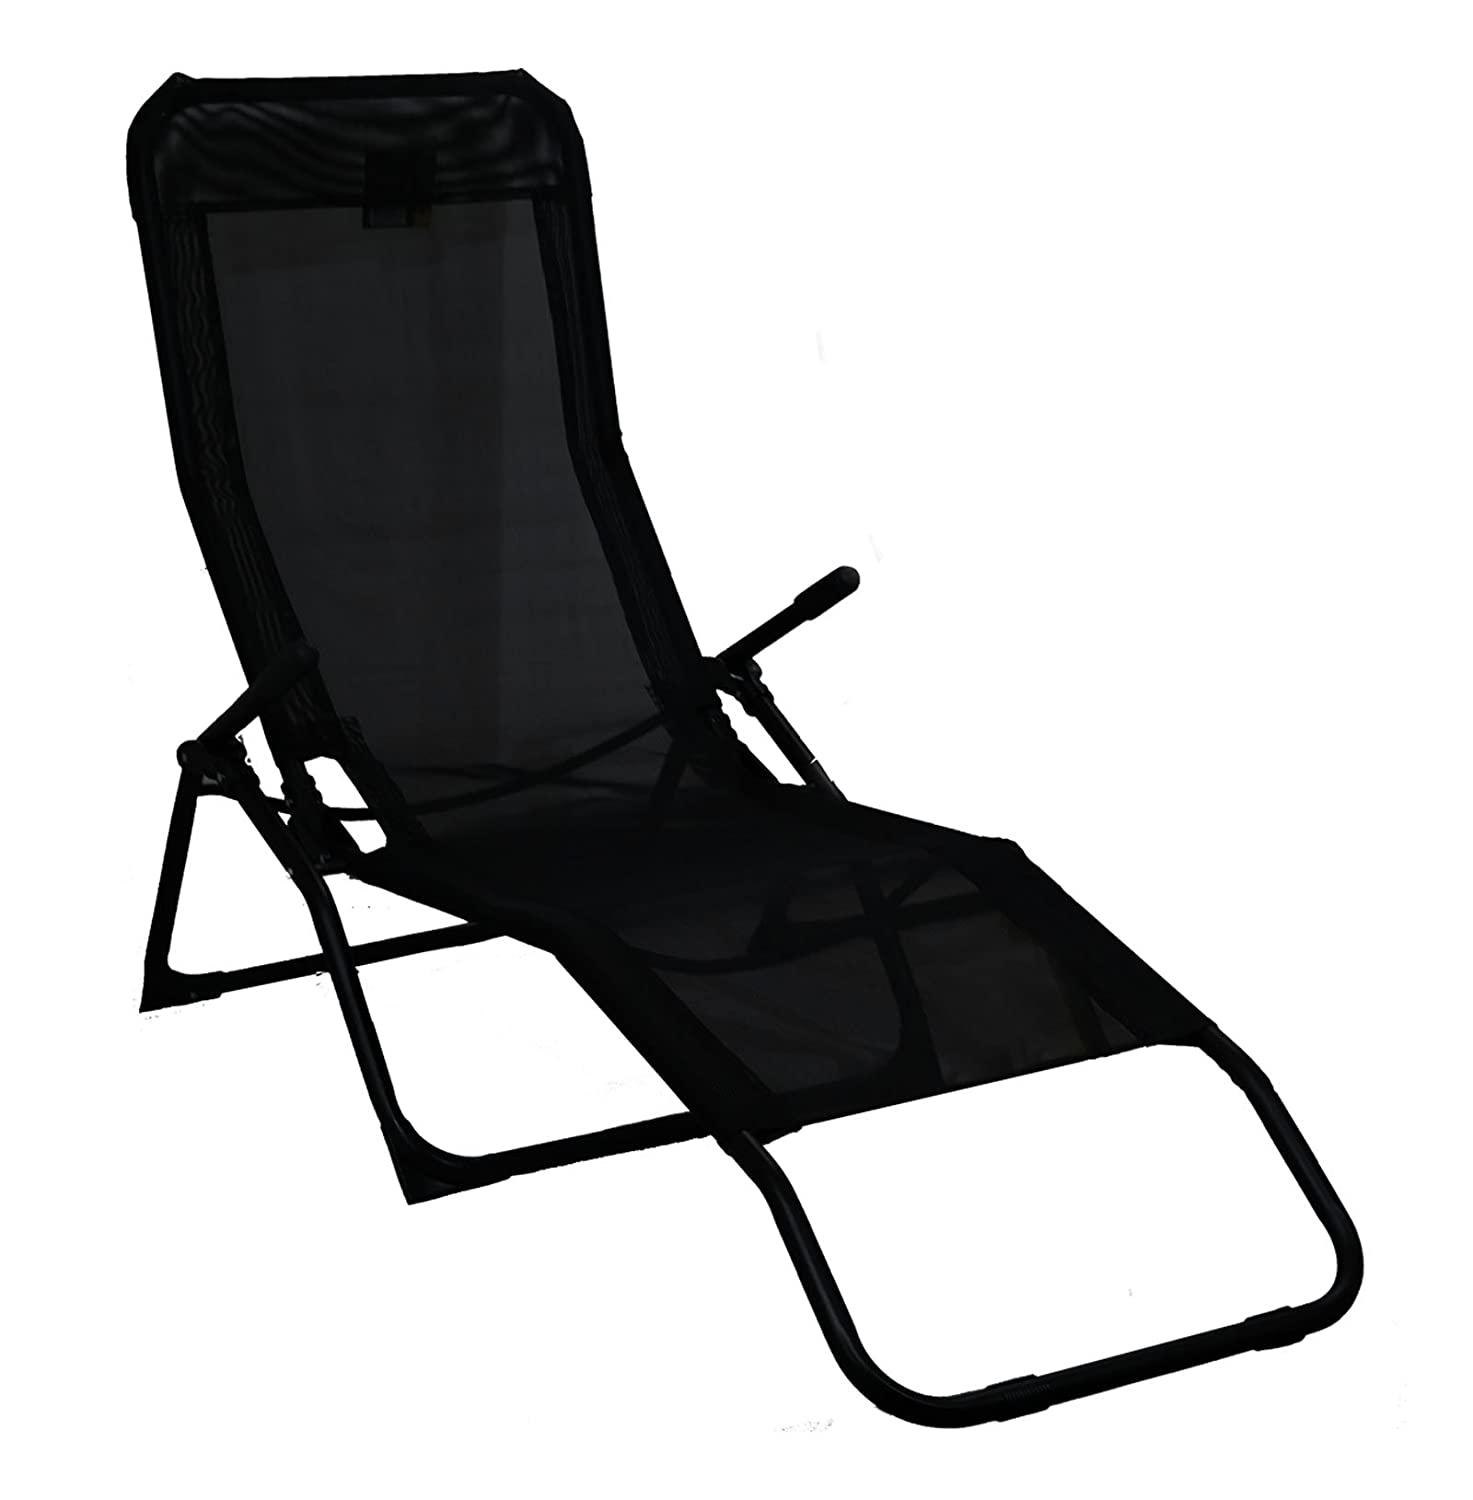 Rocker Lounger Black Sun Chair Recliner Outdoor Garden Furniture